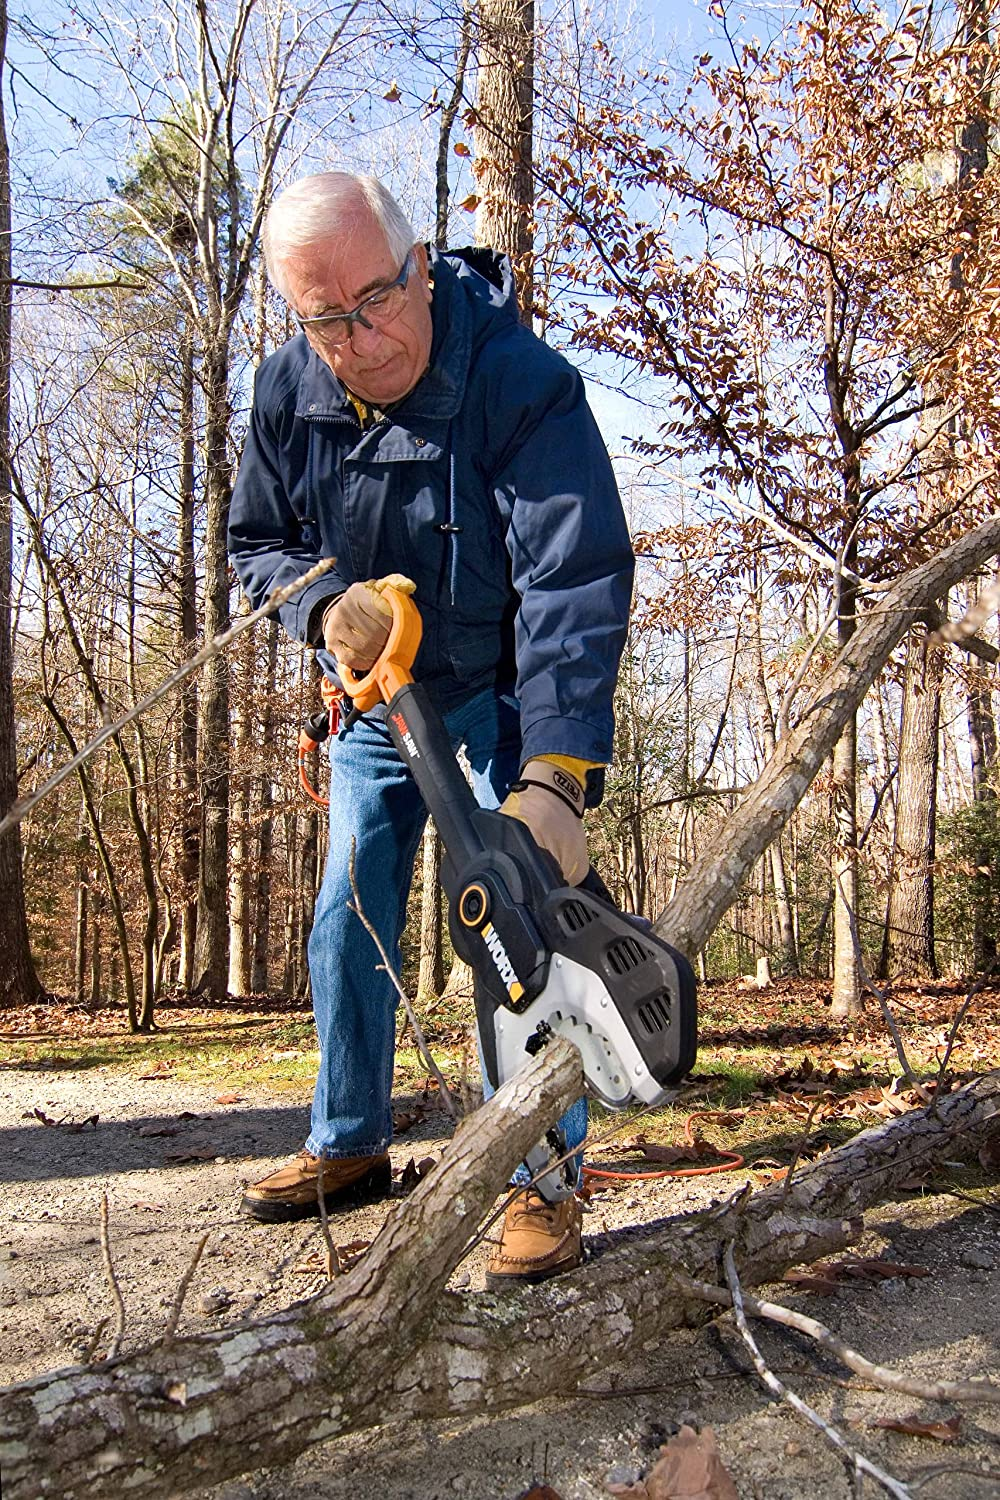 WORX WG307 Chainsaws product image 5